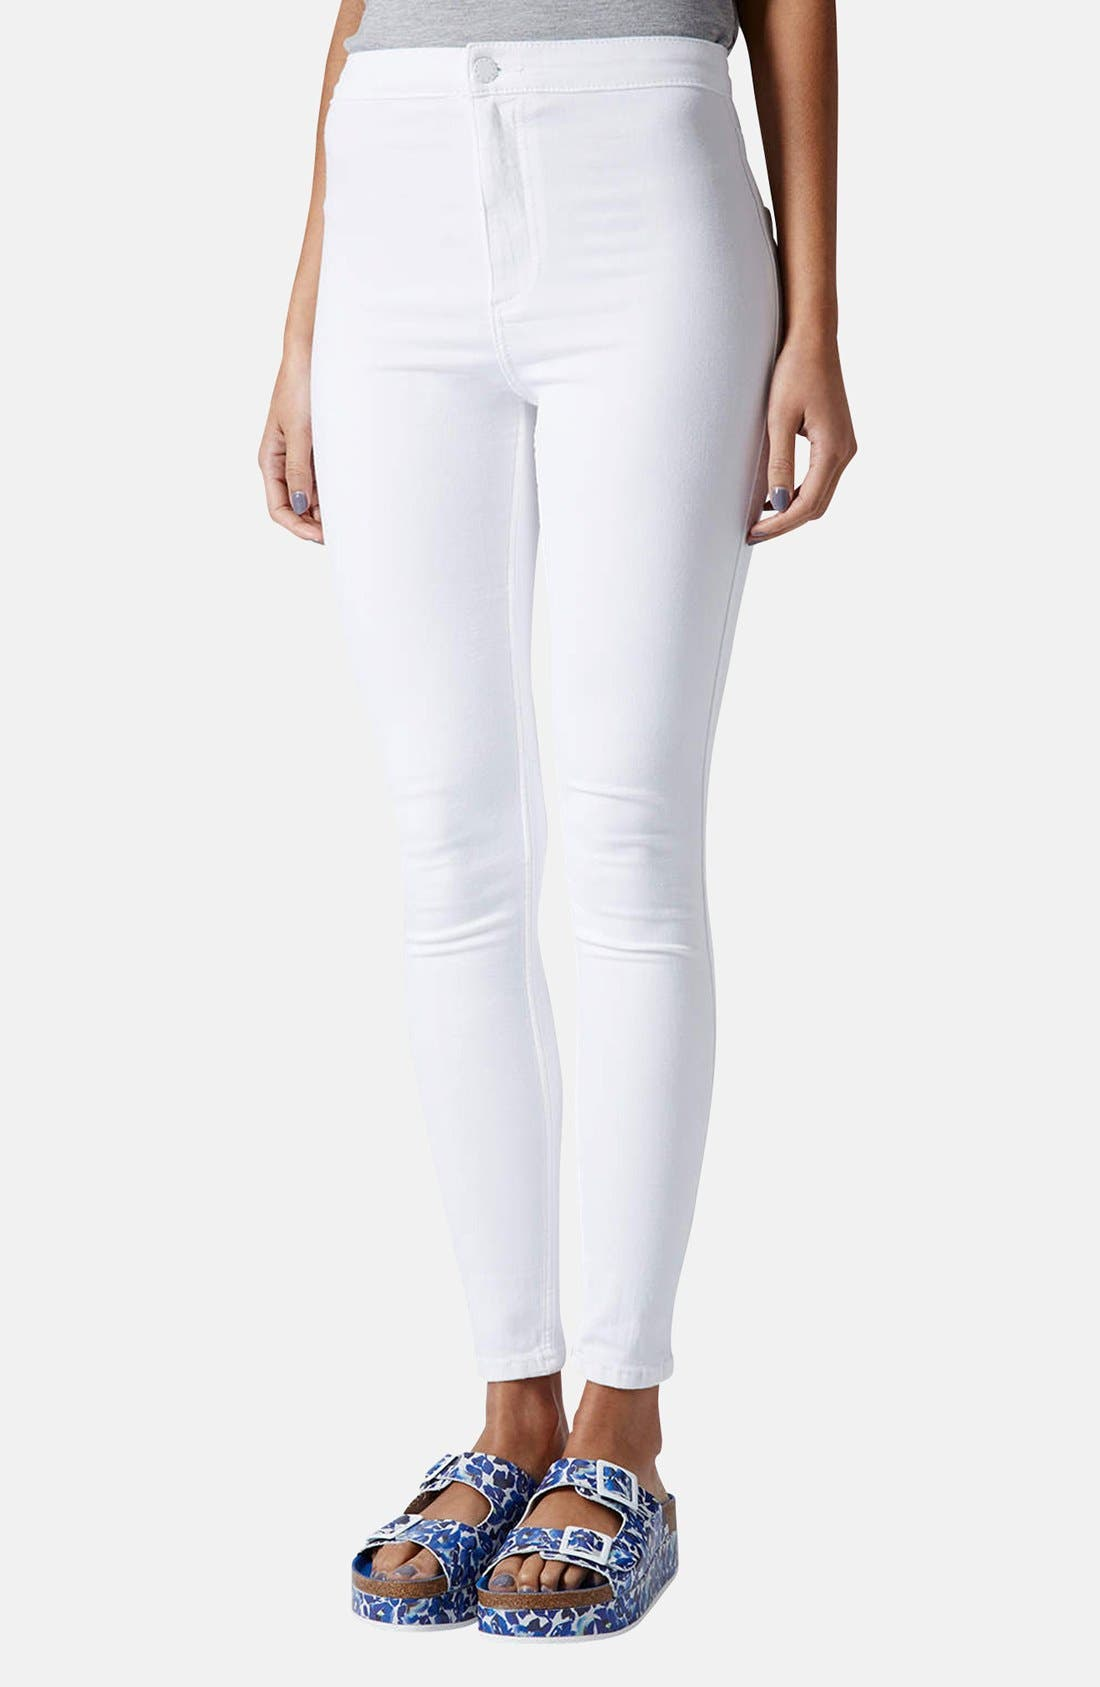 Main Image - Topshop Moto 'Joni' High Rise Skinny Jeans (Regular & Long)